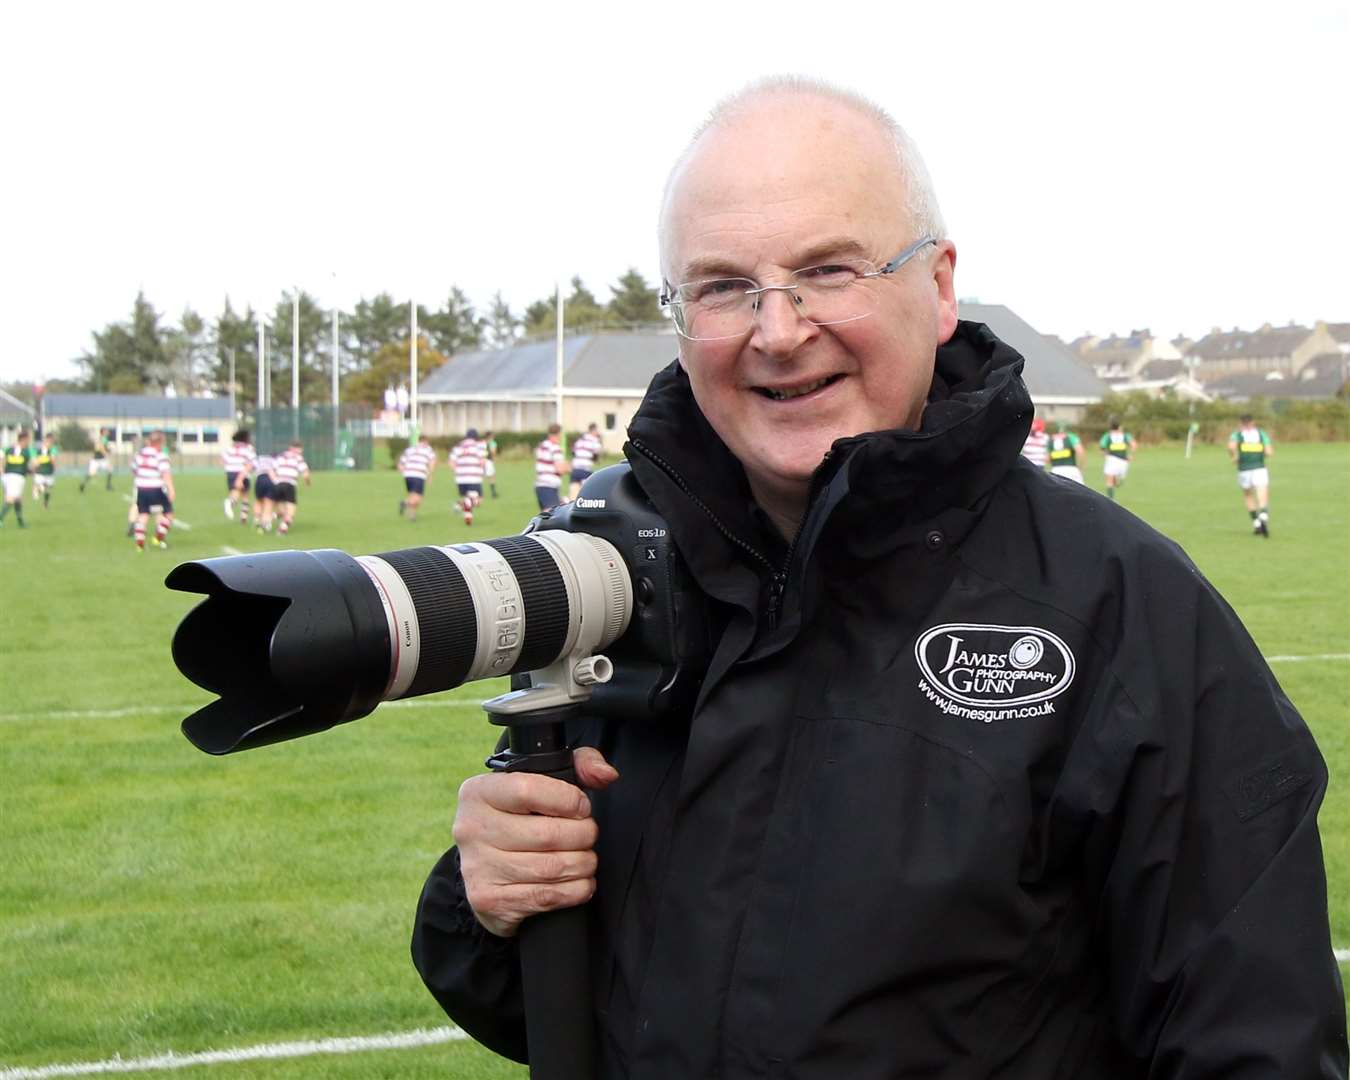 James at the Millbank rugby ground in Thurso to cover a Caithness home game.